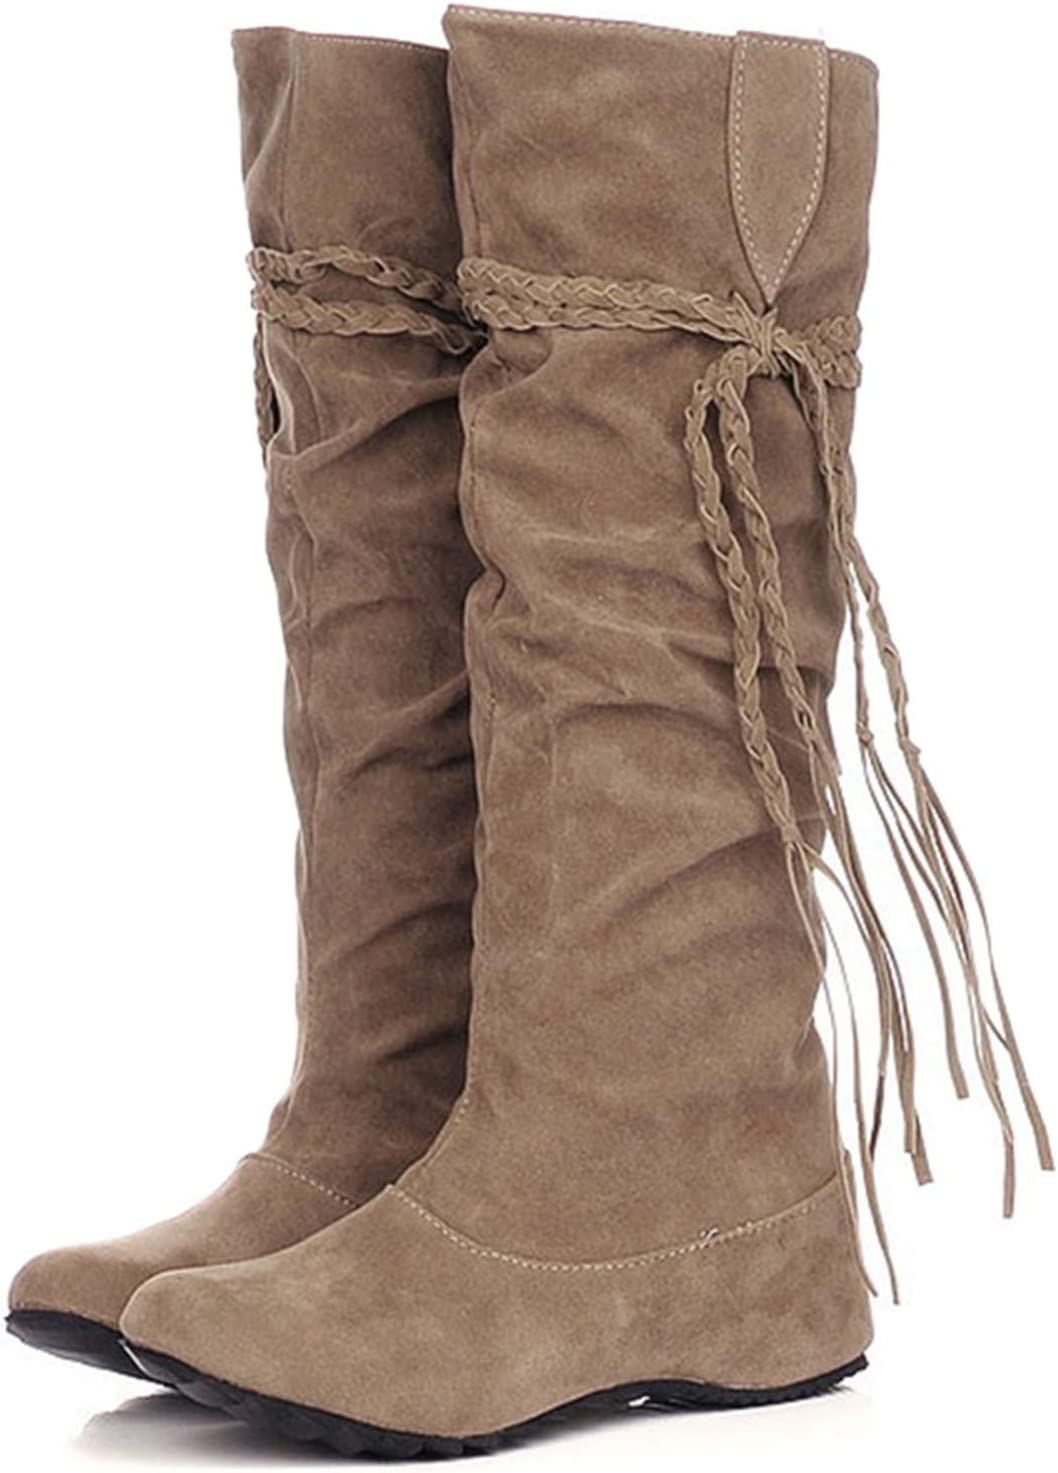 Tassel PU Leather Washington service Mall Suede Womens Shoes High Over In Boots The Knee